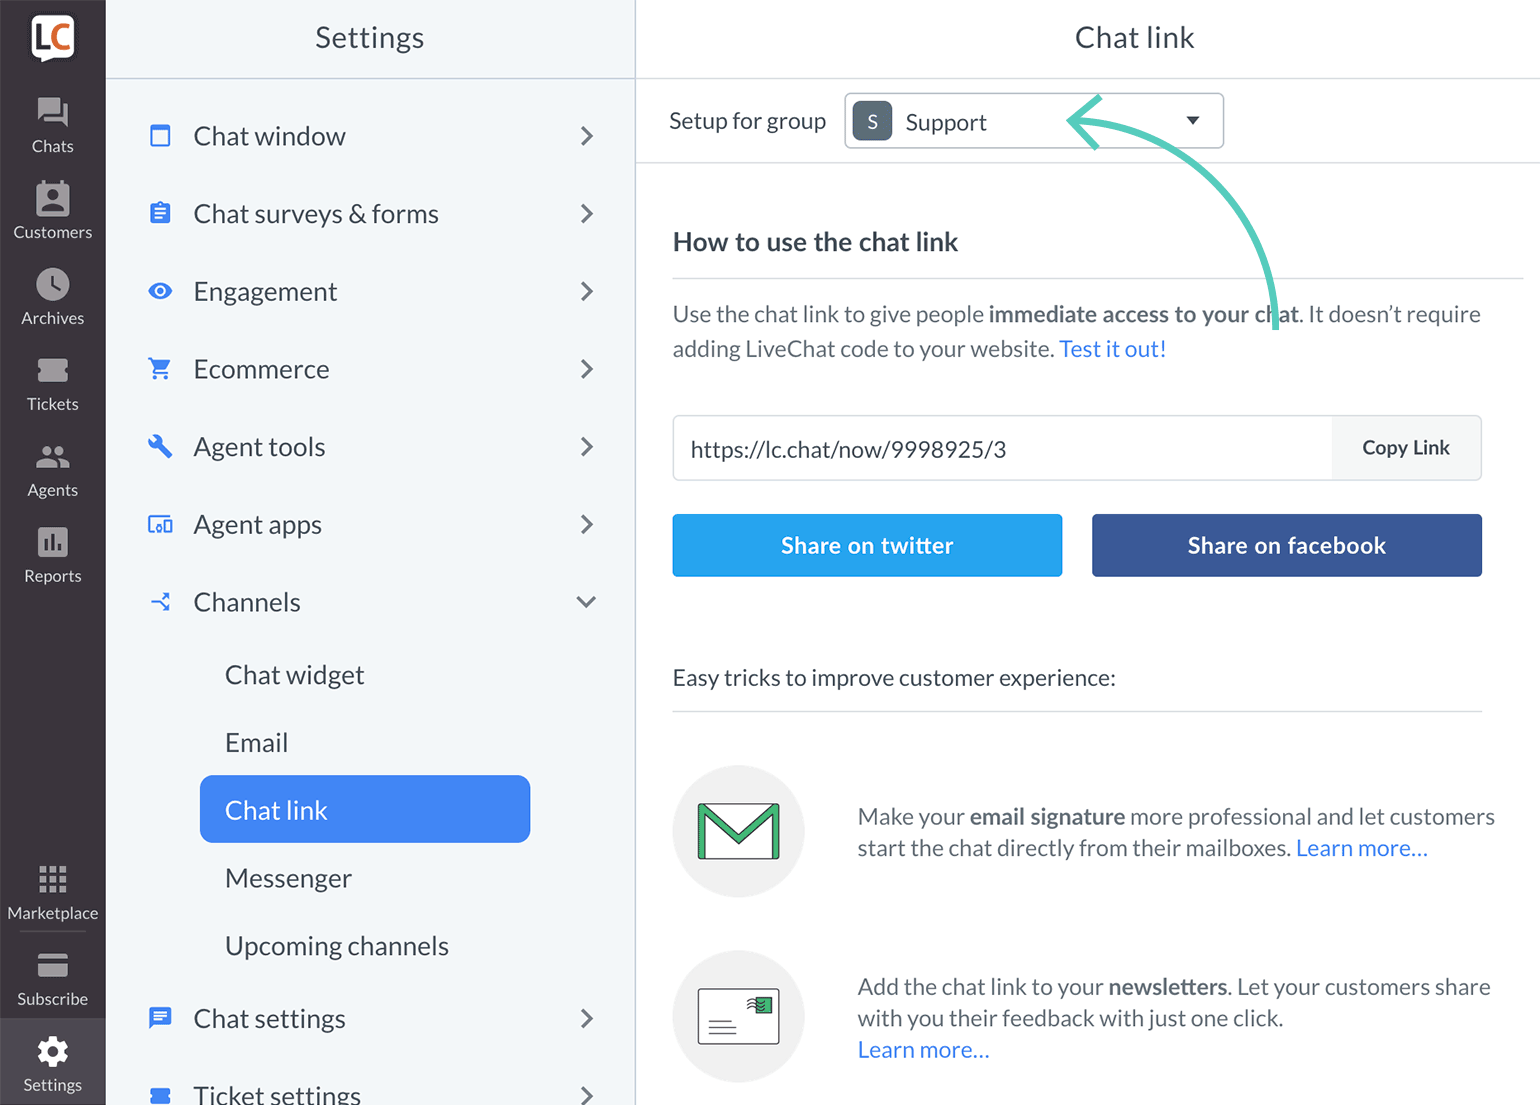 Get direct chat link for groups